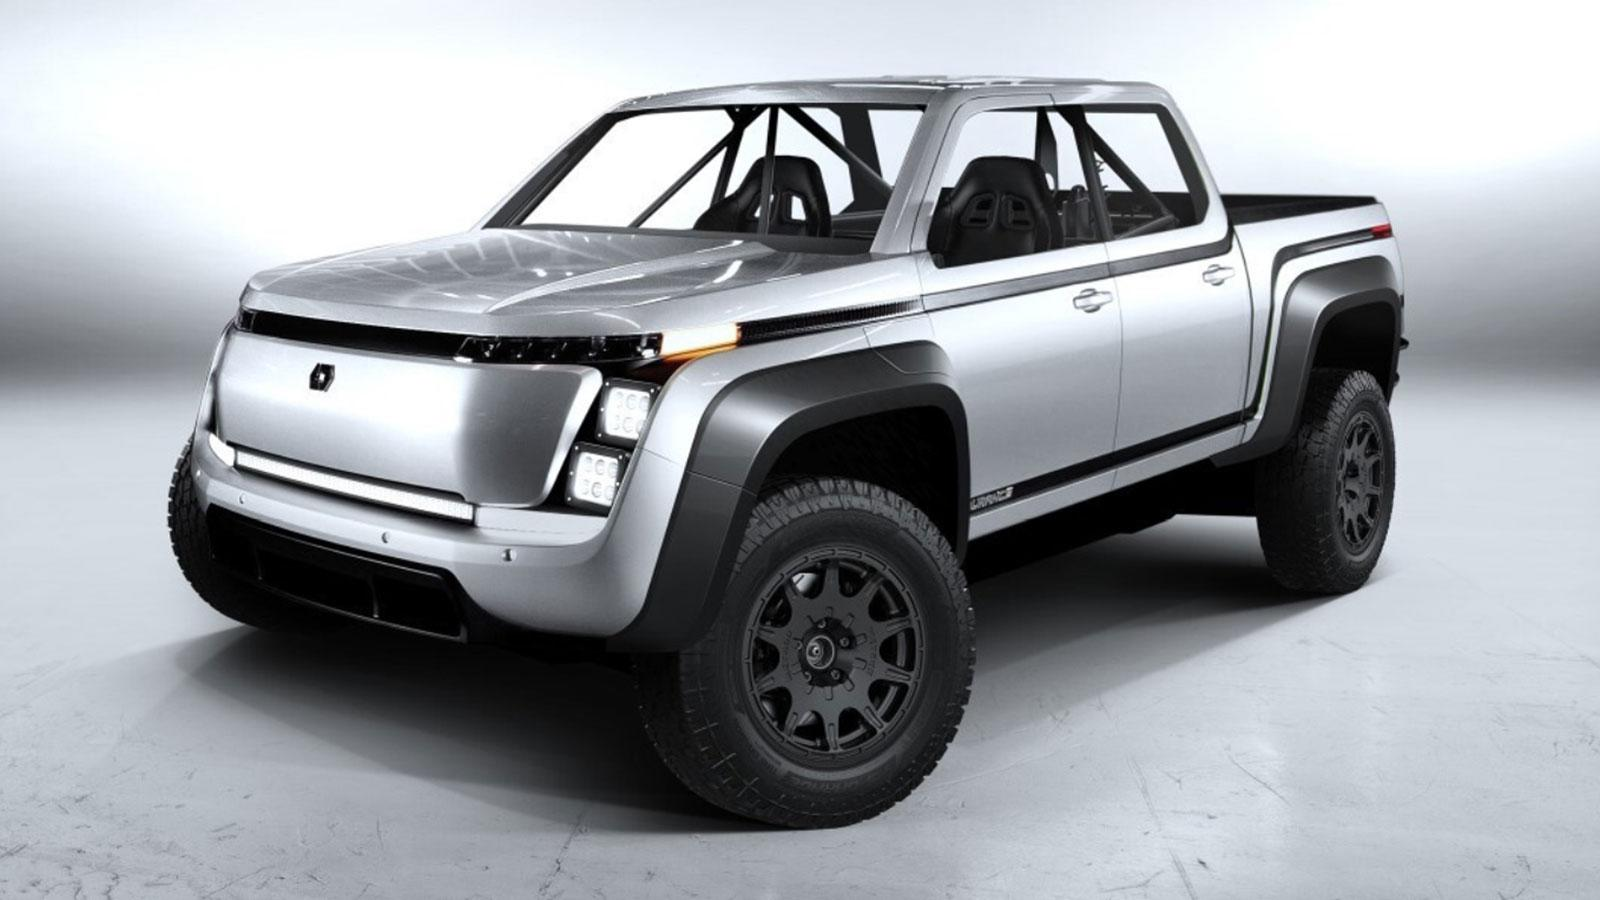 Lordstown Motors' electric race truck is (mostly) ready for off-roading - Engadget